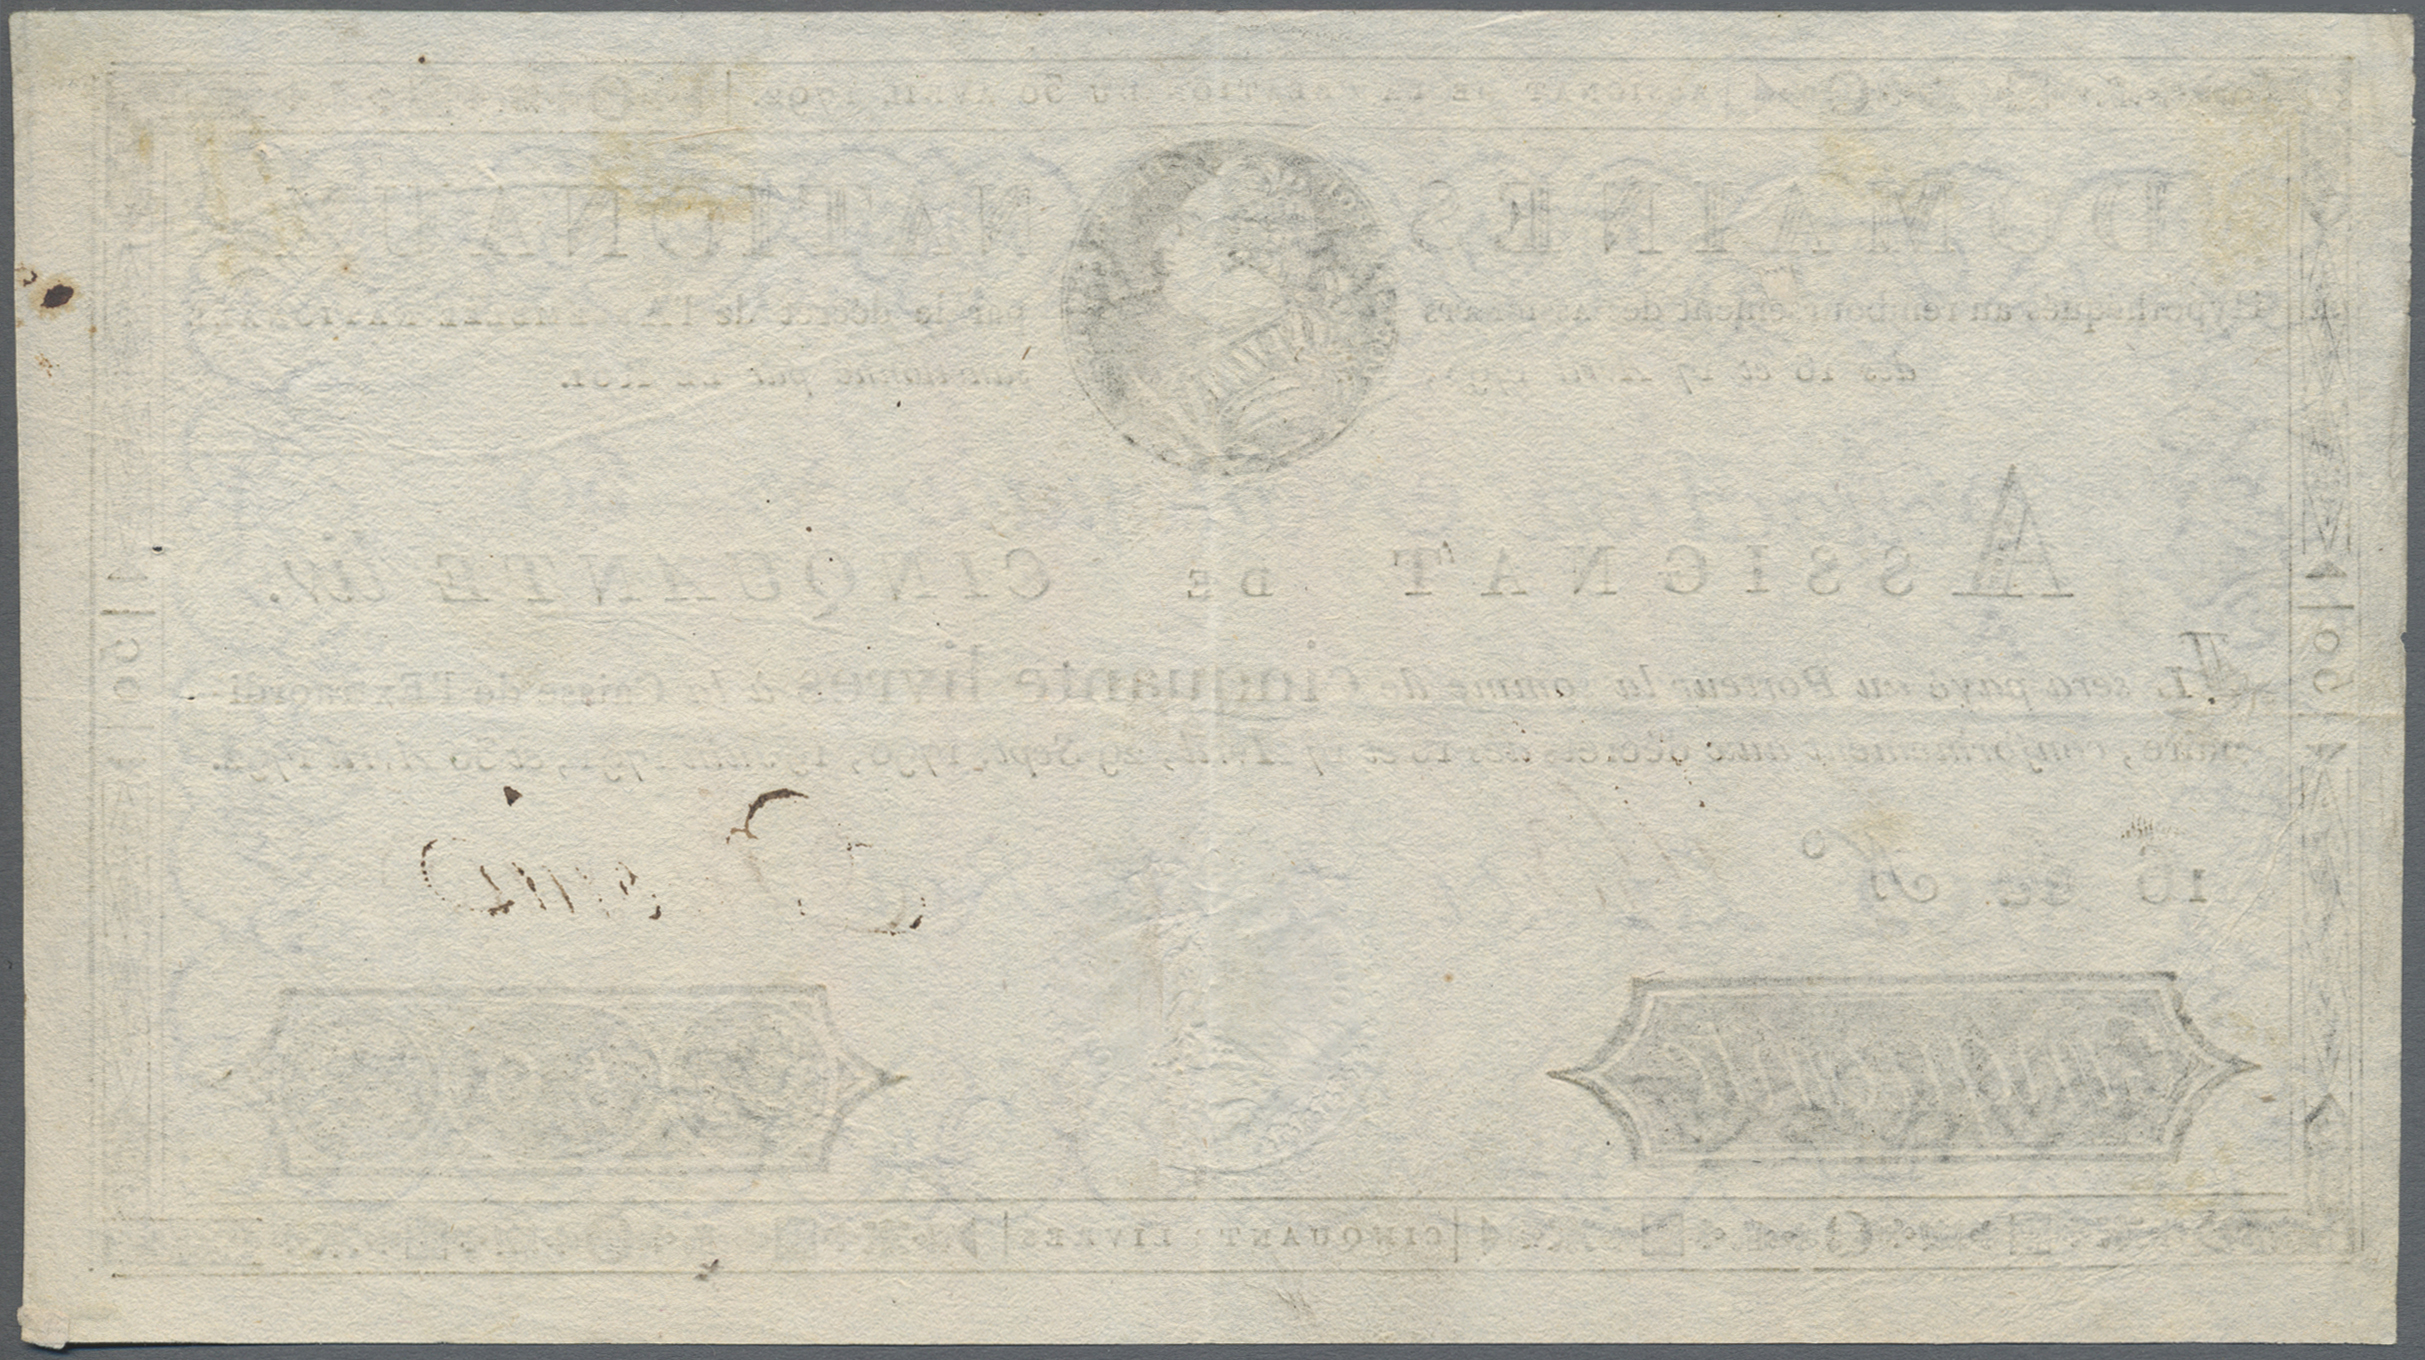 Lot 00264 - France / Frankreich | Banknoten  -  Auktionshaus Christoph Gärtner GmbH & Co. KG Sale #48 The Banknotes